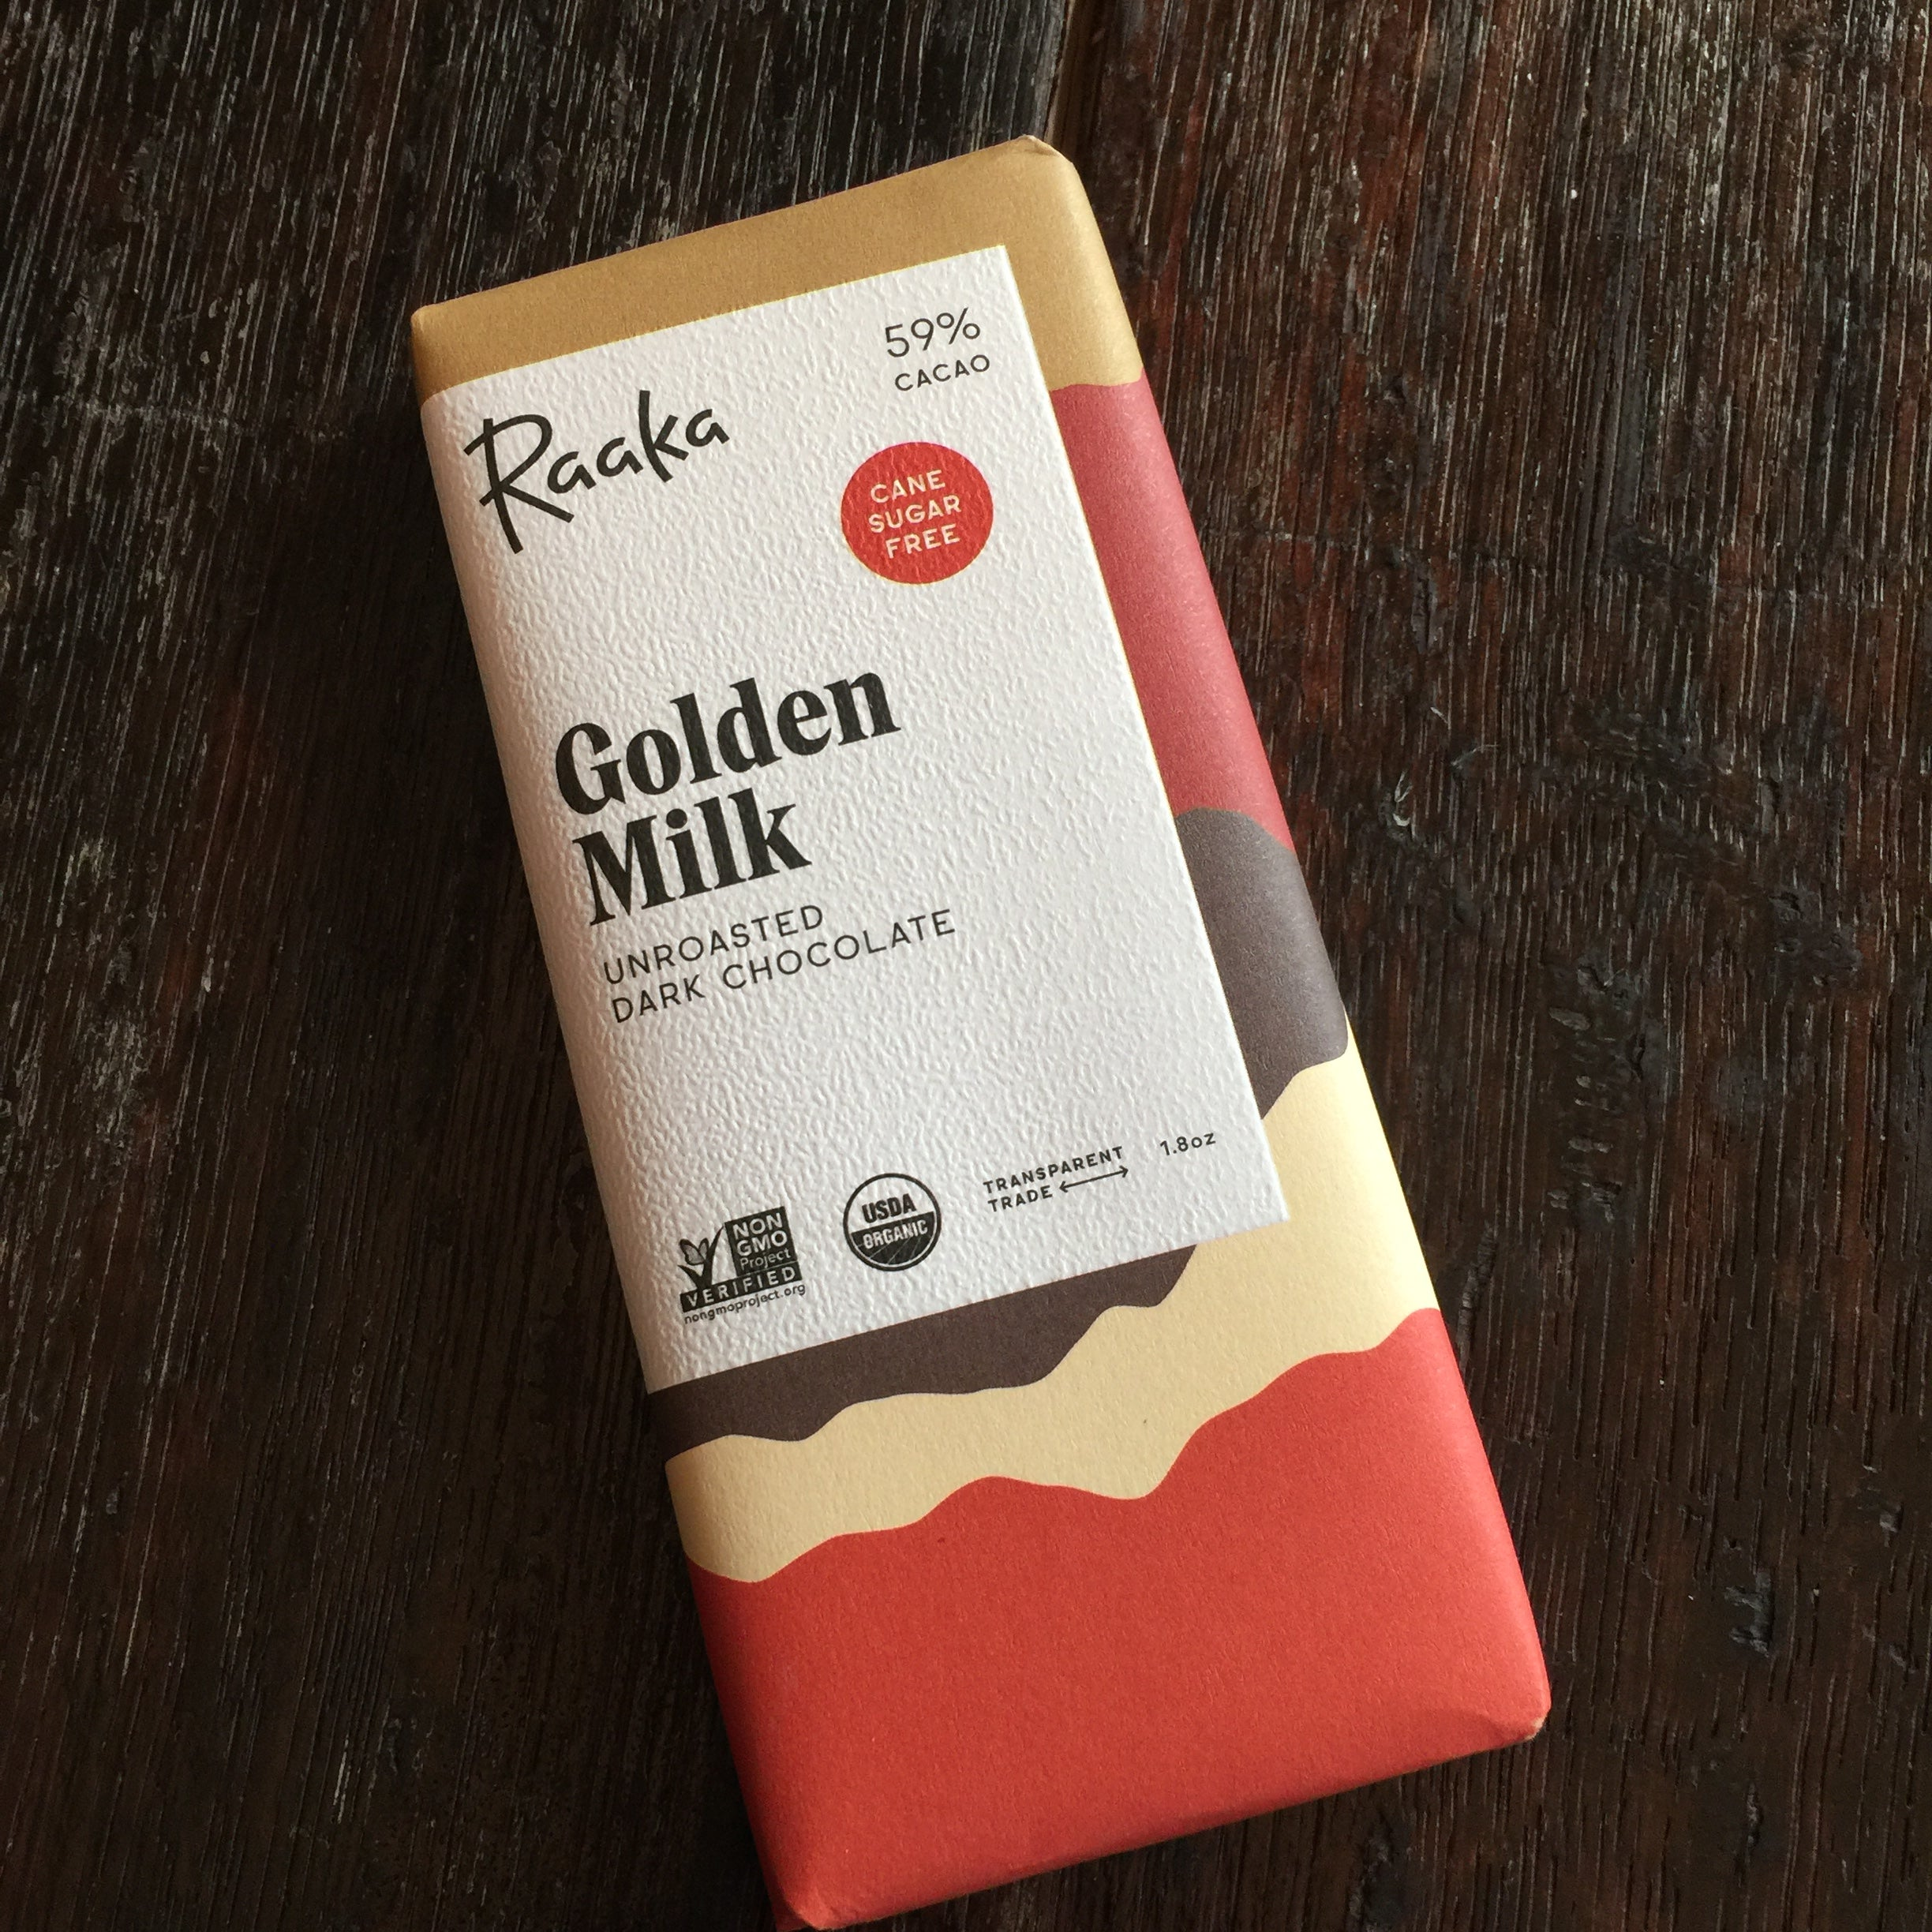 Raaka Unroasted Dark Chocolate Sugar Cane Free - Golden Milk 59% Bar